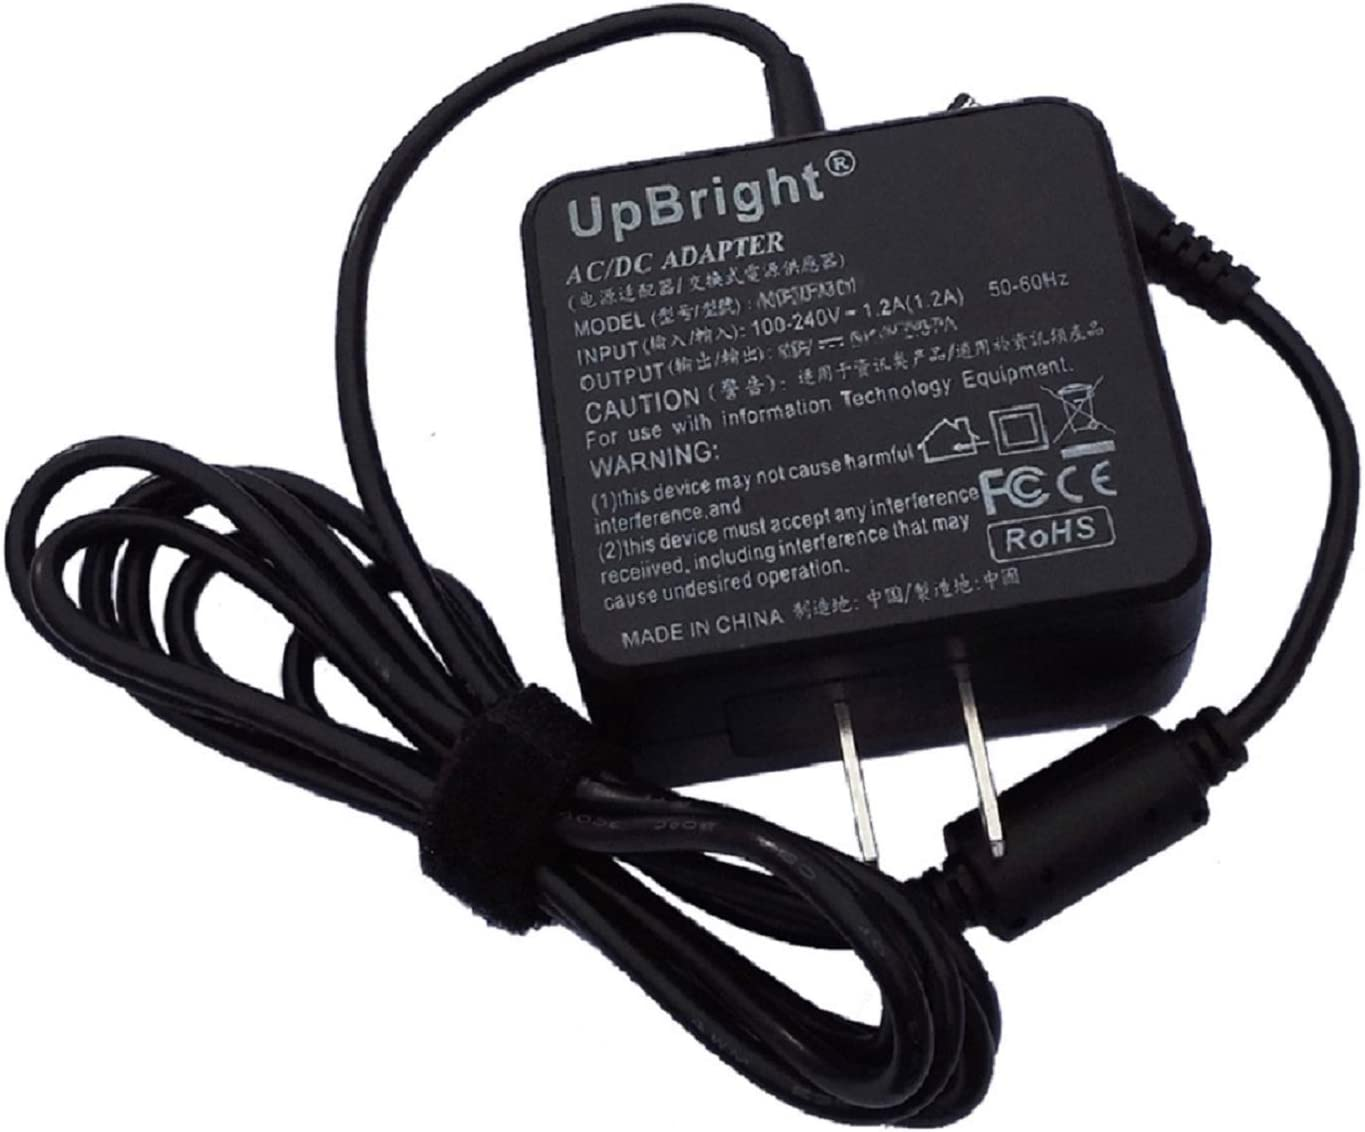 UpBright New 19V 2.15A 40W A/DC Adapter Compatible with Acer Aspire V5-131 Model Q1VZC C7 Chromebook C710-2615 Laptop Notebook PC 19VDC 2.15Amp Power Supply Cord Cable PS Battery Charger Mains PSU